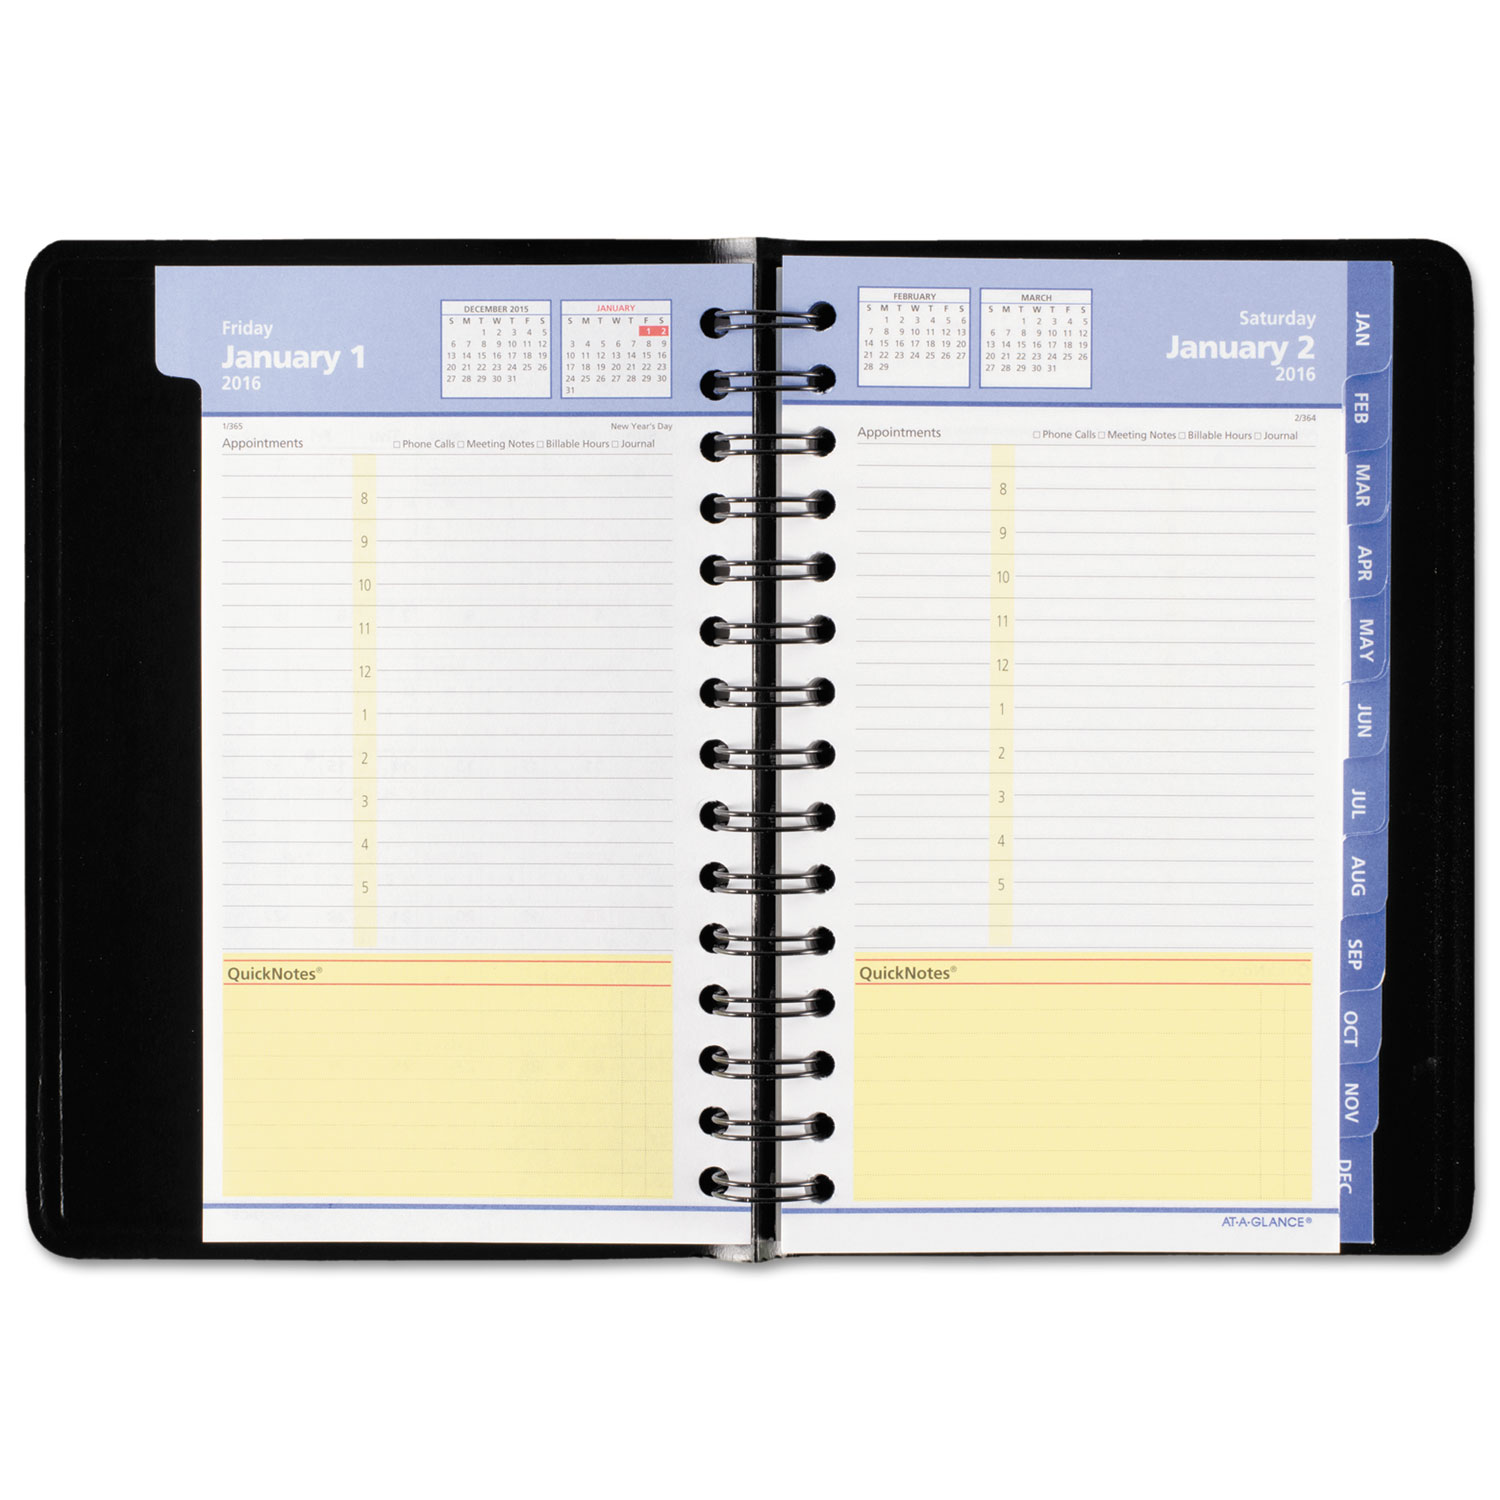 quicknotes daily  monthly appointment book  planner by at